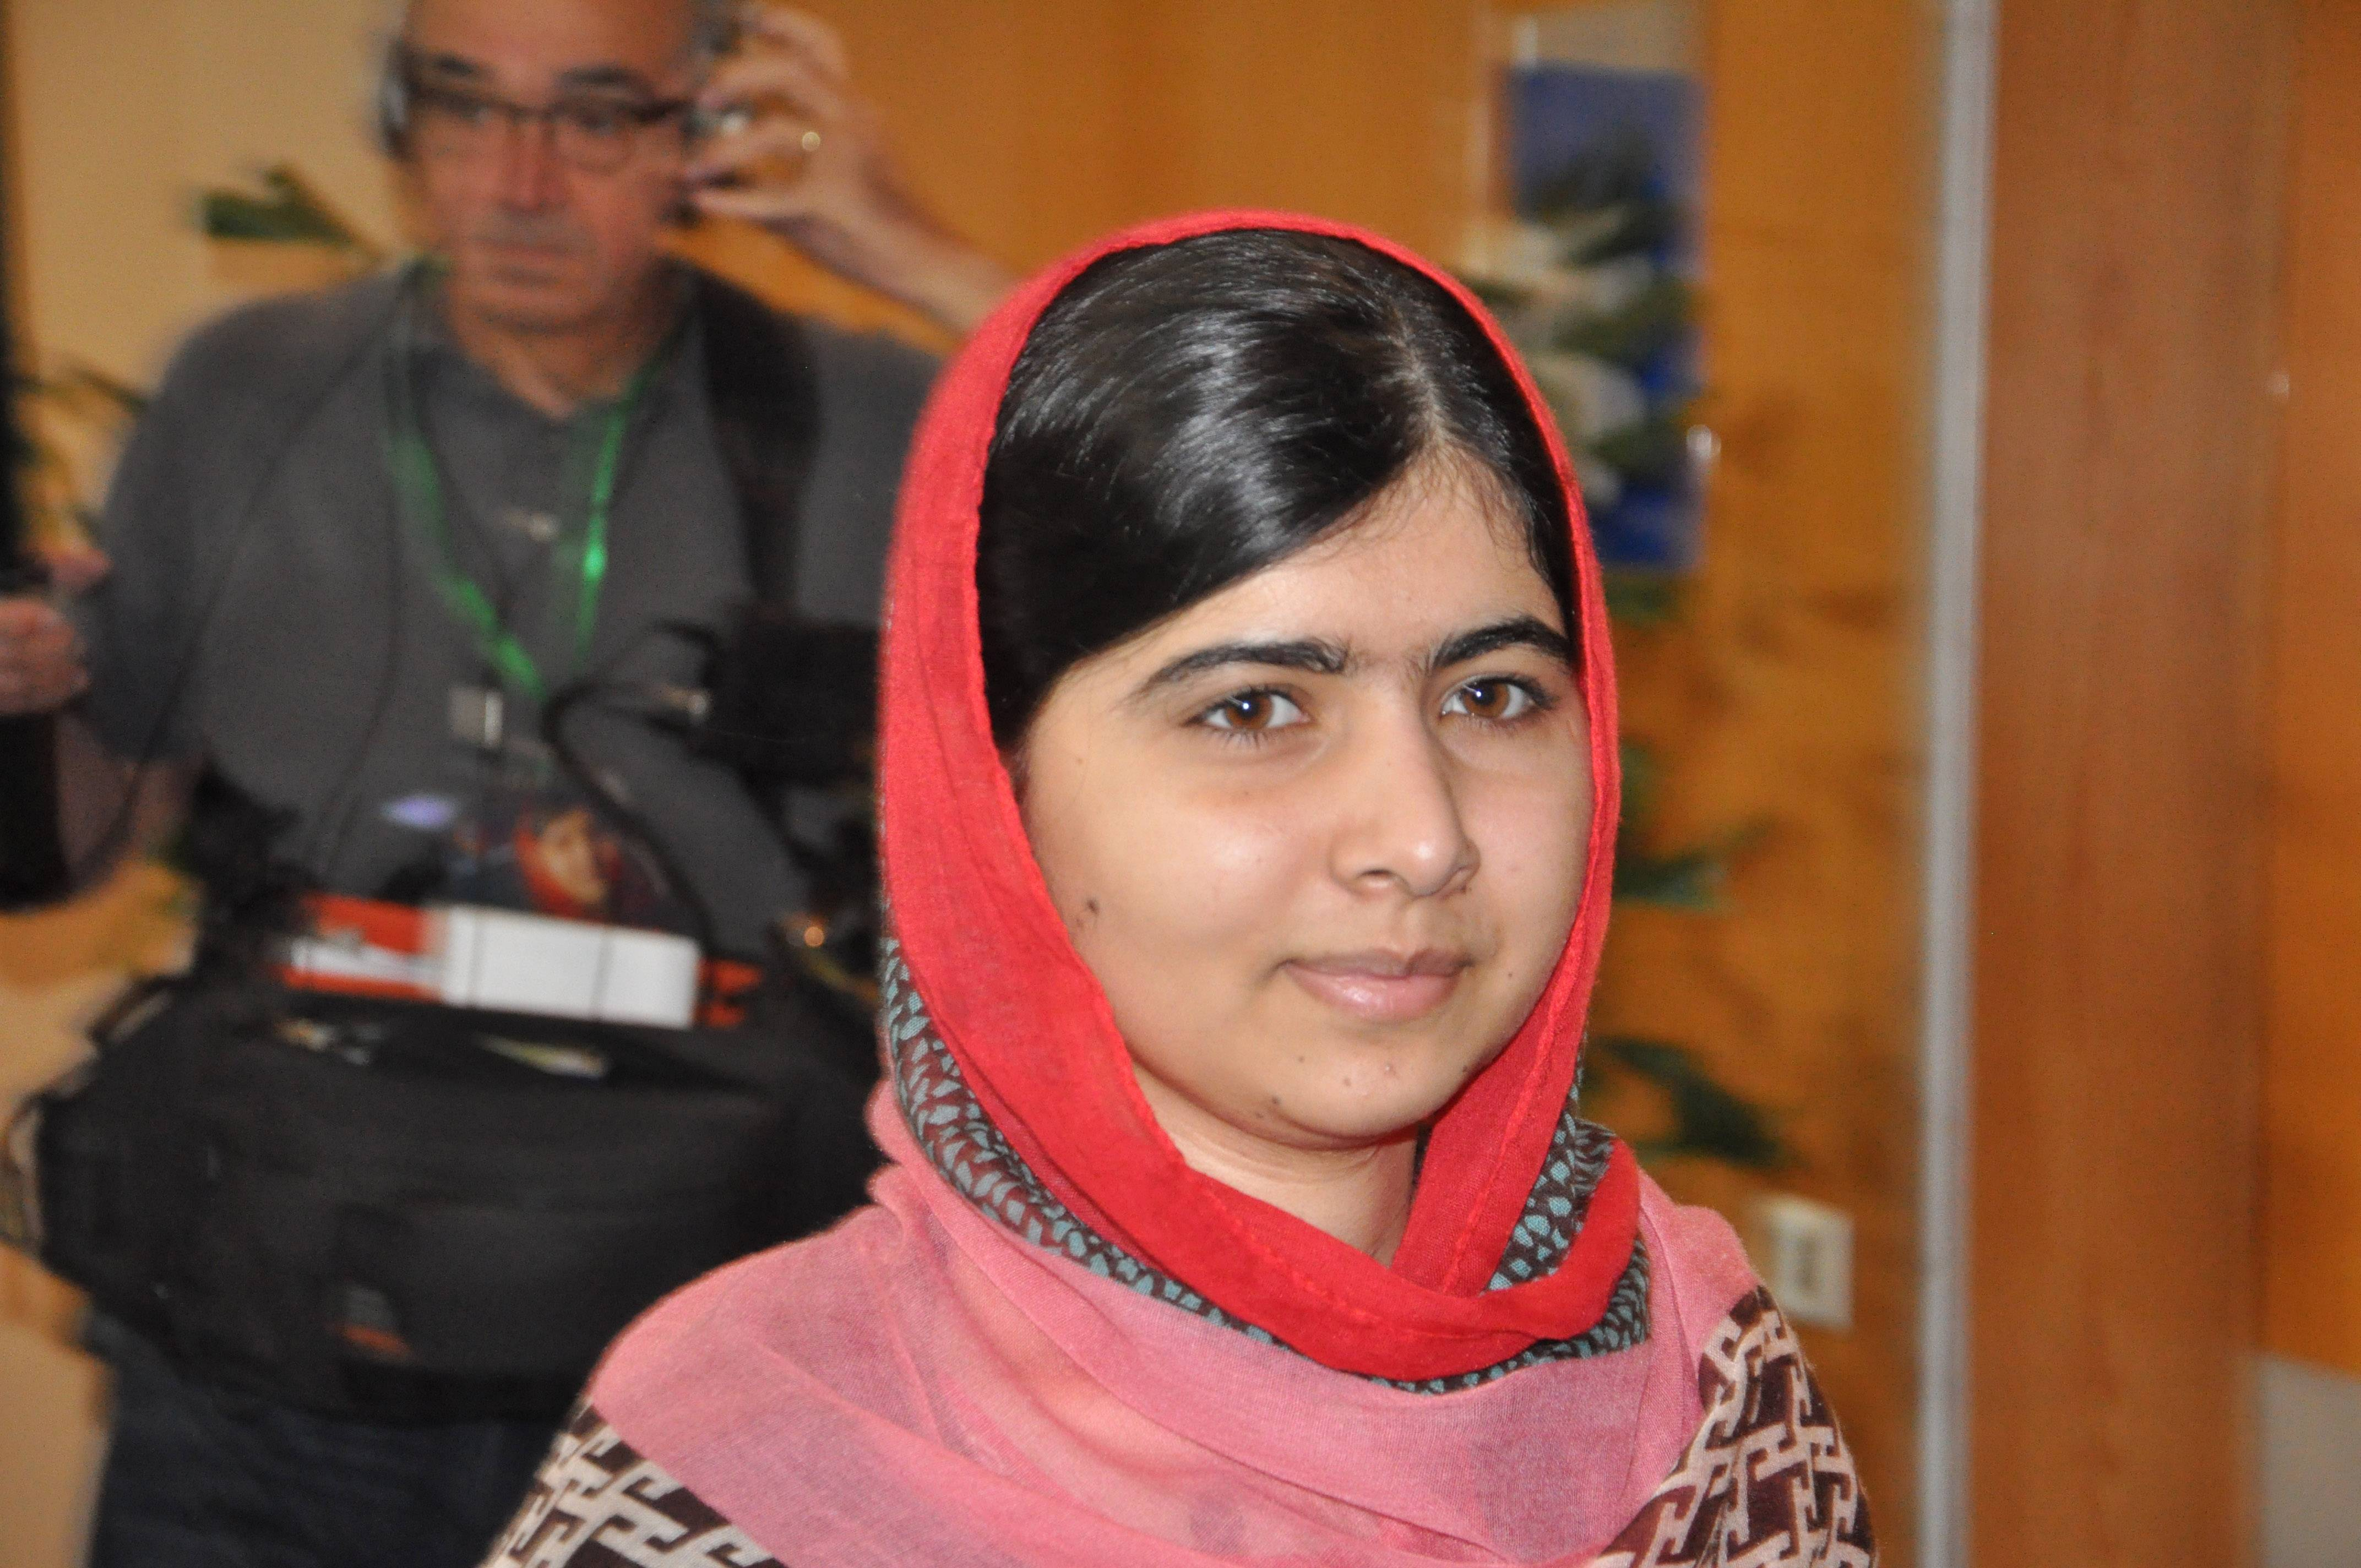 Pakistani activist Malala Yousafzai, who survived being shot by the Taliban because she advocated education for girls, visits Abuja, Nigeria, Monday. Malala Yousafzai traveled to Abuja in Nigeria to meet the relatives of schoolgirls who were kidnapped by Boko Haram three months ago.